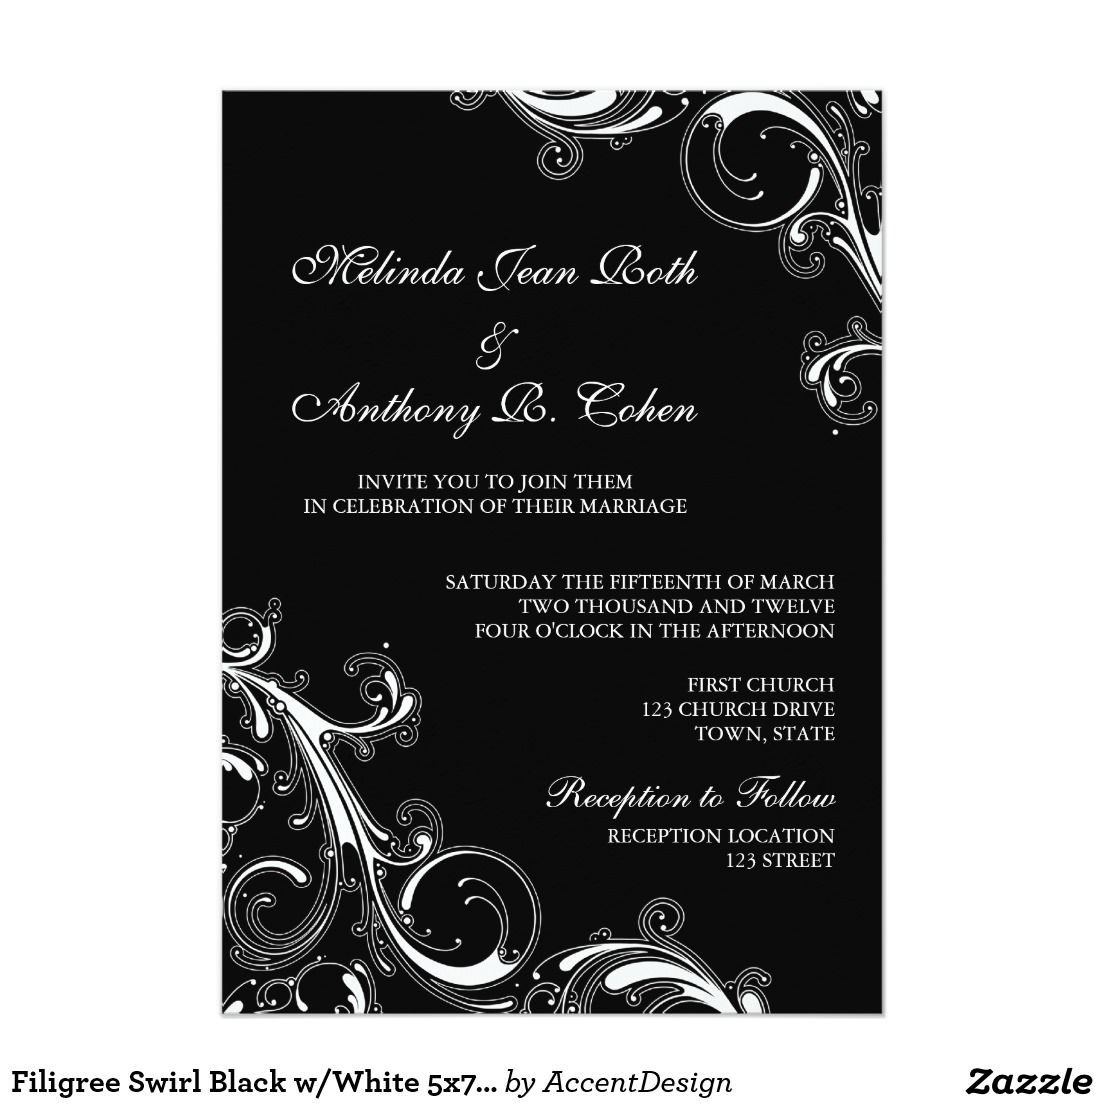 Filigree Swirl Black wWhite 5x7 Wedding Wedding Invitations